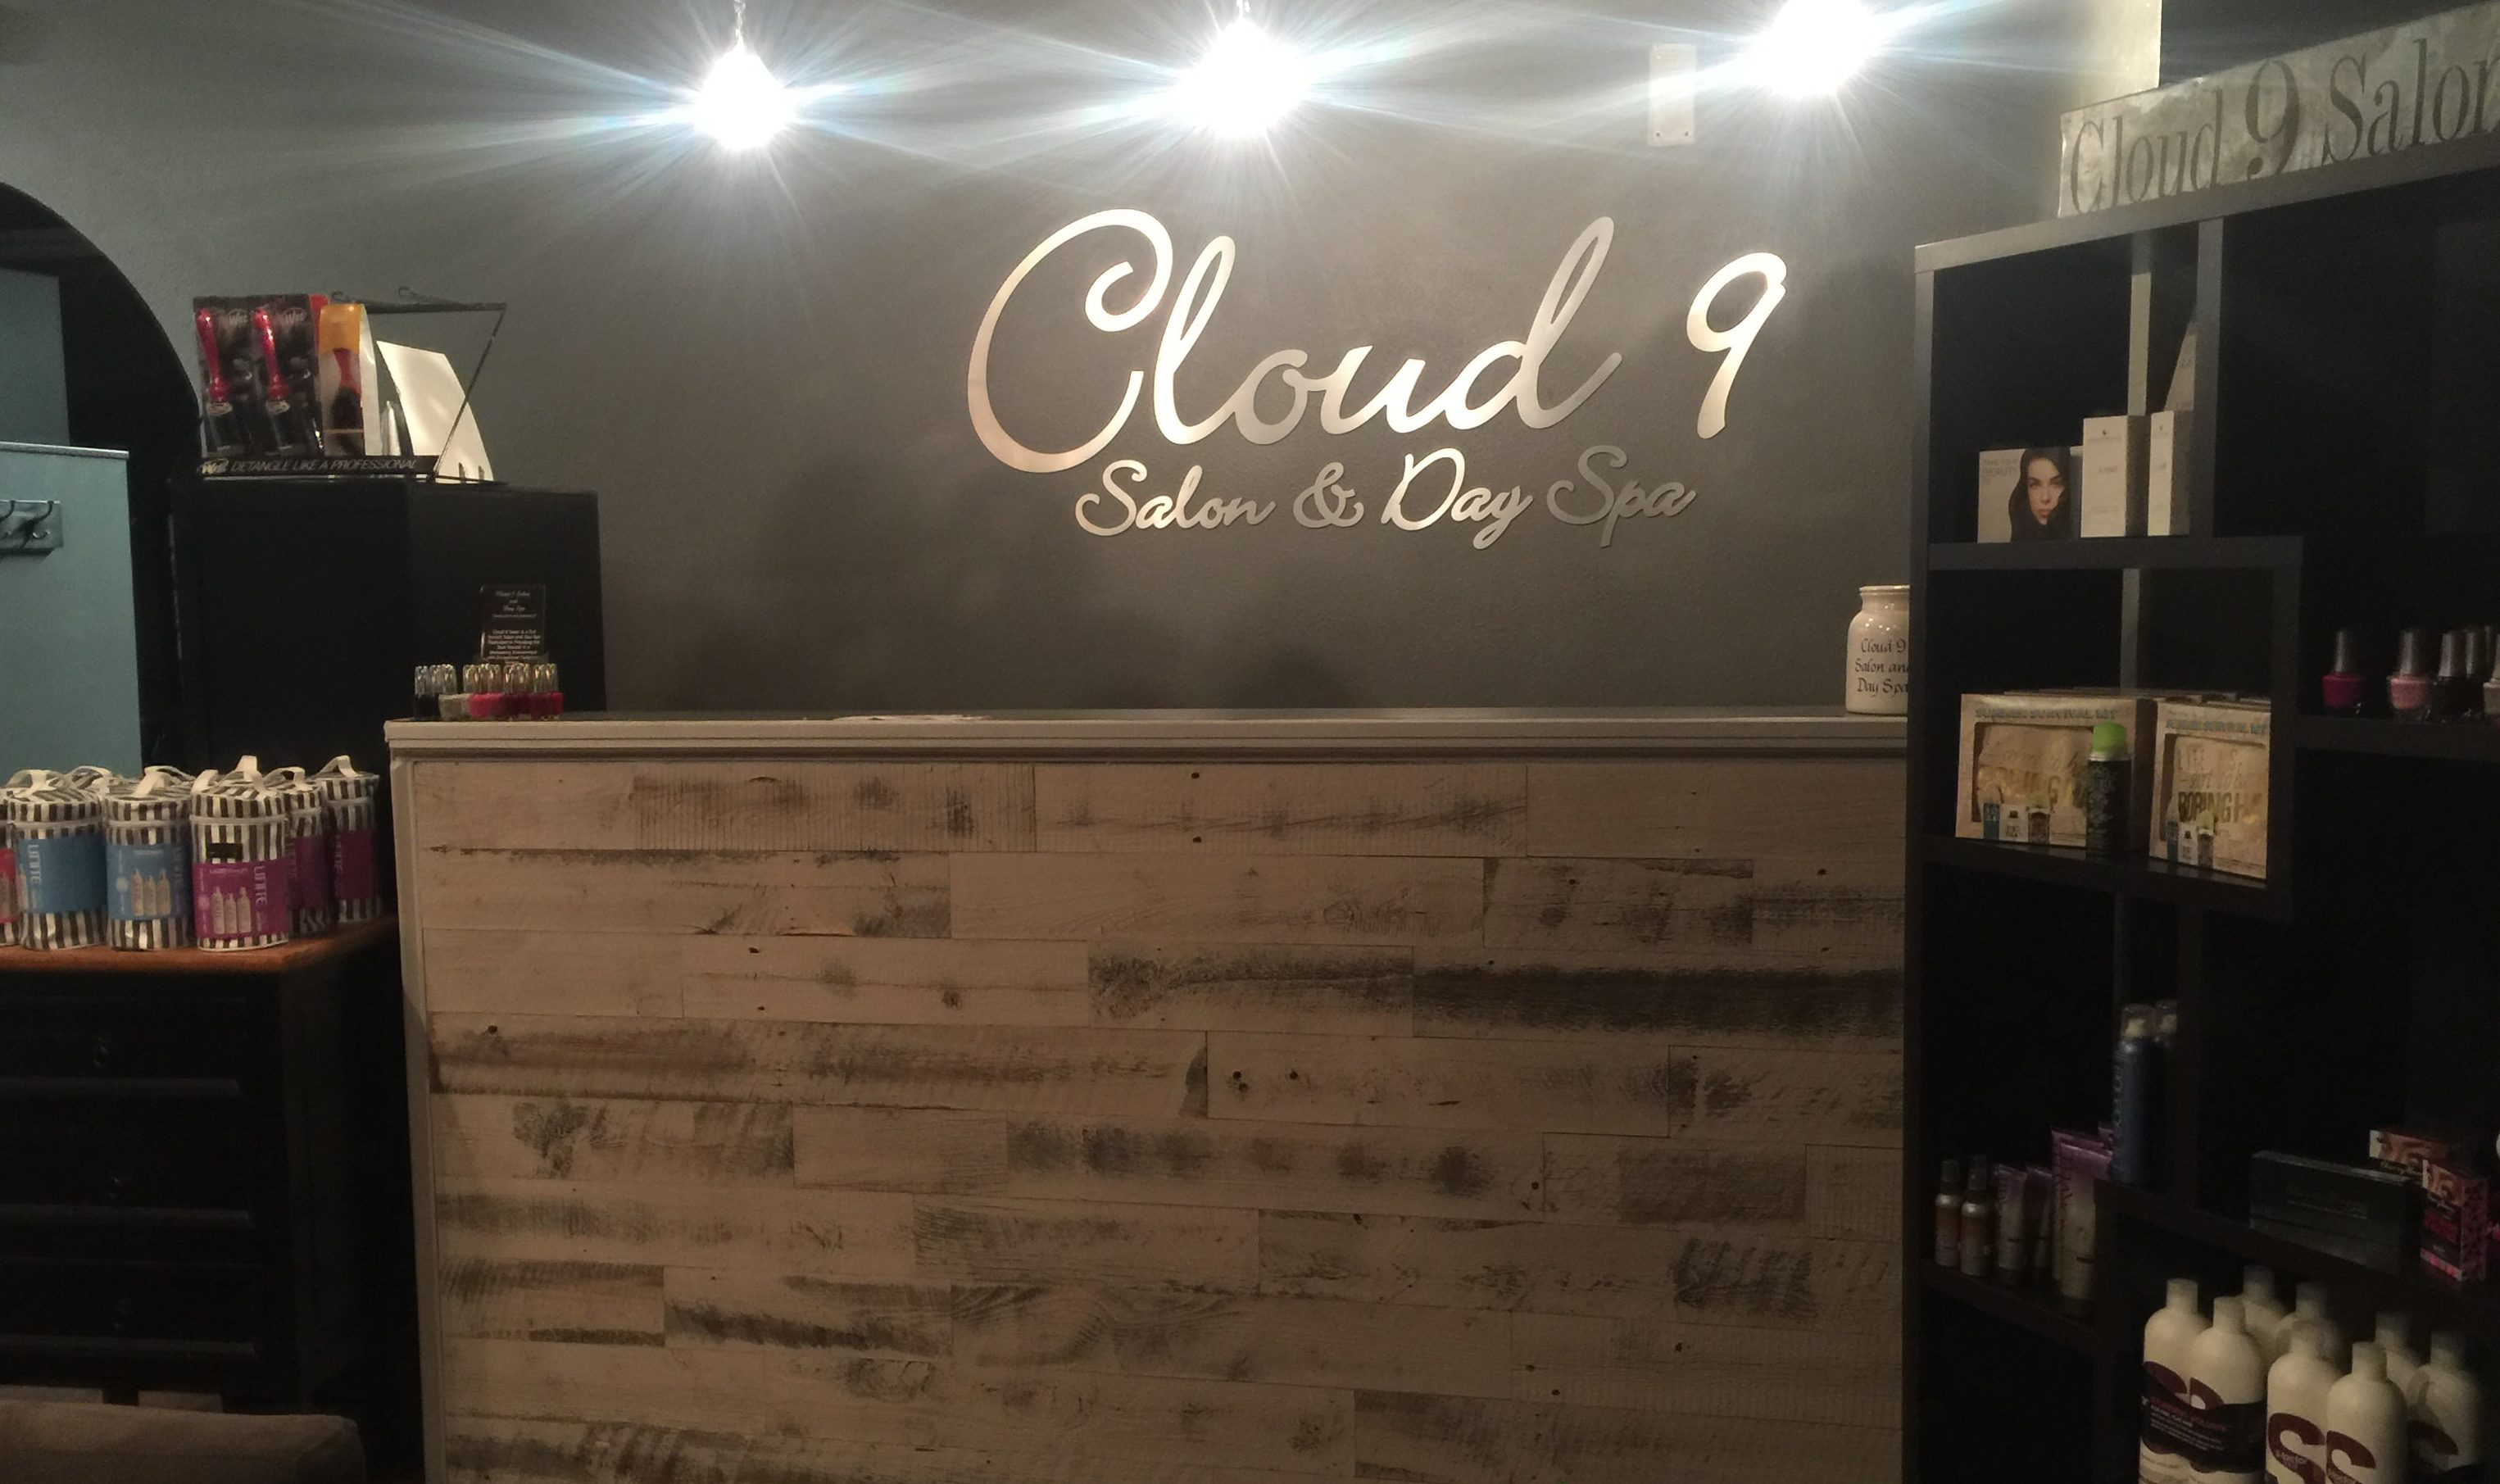 Cloud 9 Salon & Day Spa